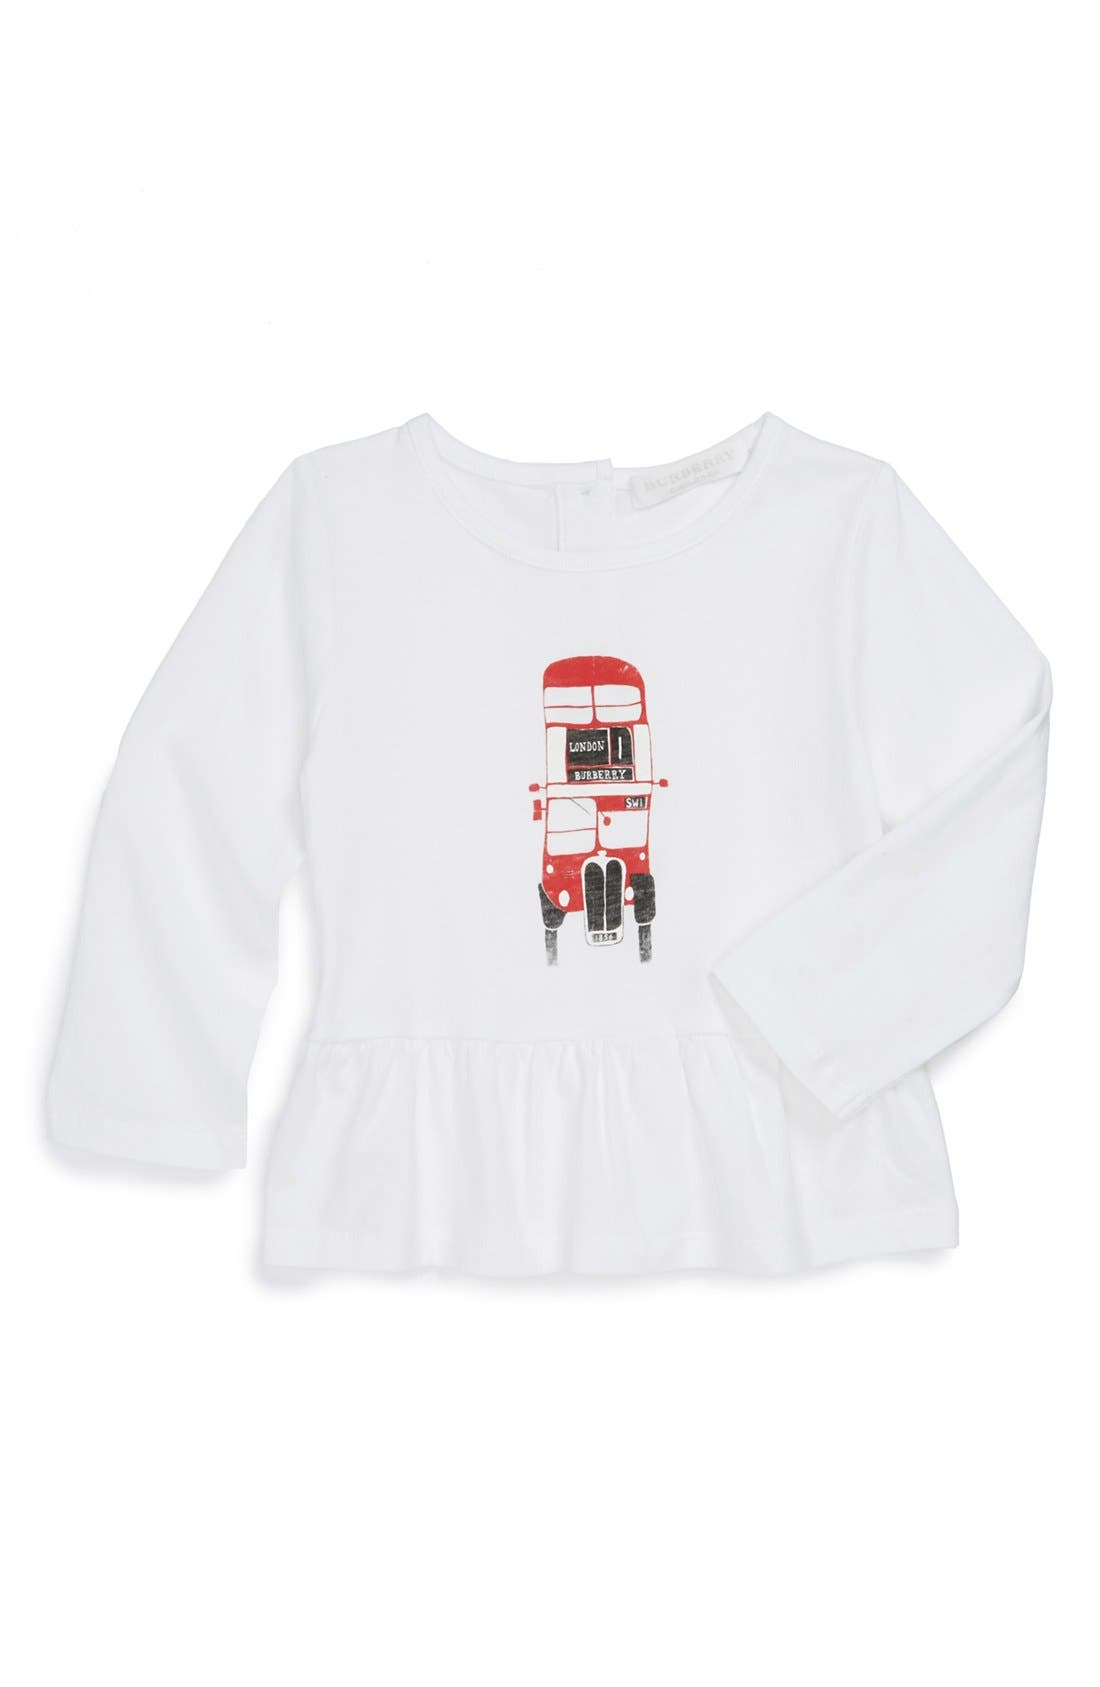 Main Image - Burberry Graphic Tee (Toddler Girls)